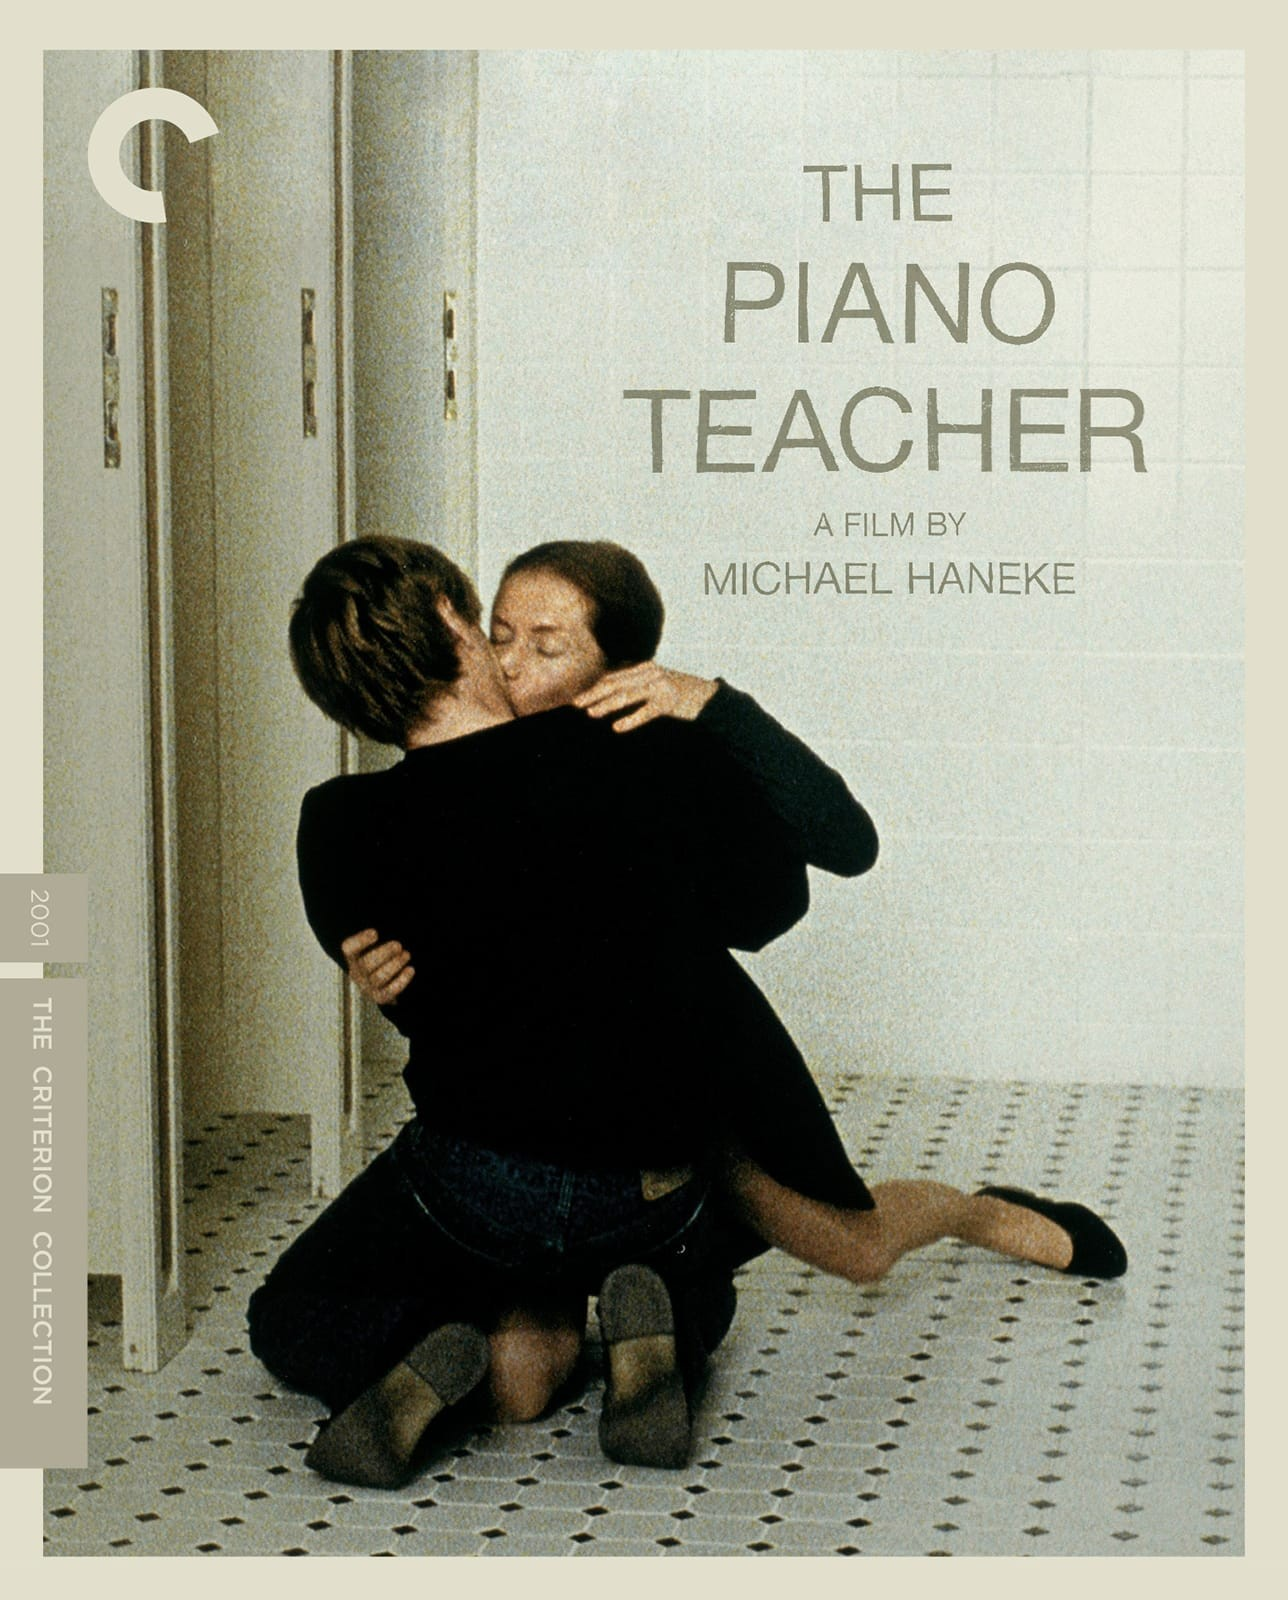 The Piano Teacher (2001) | The Criterion Collection